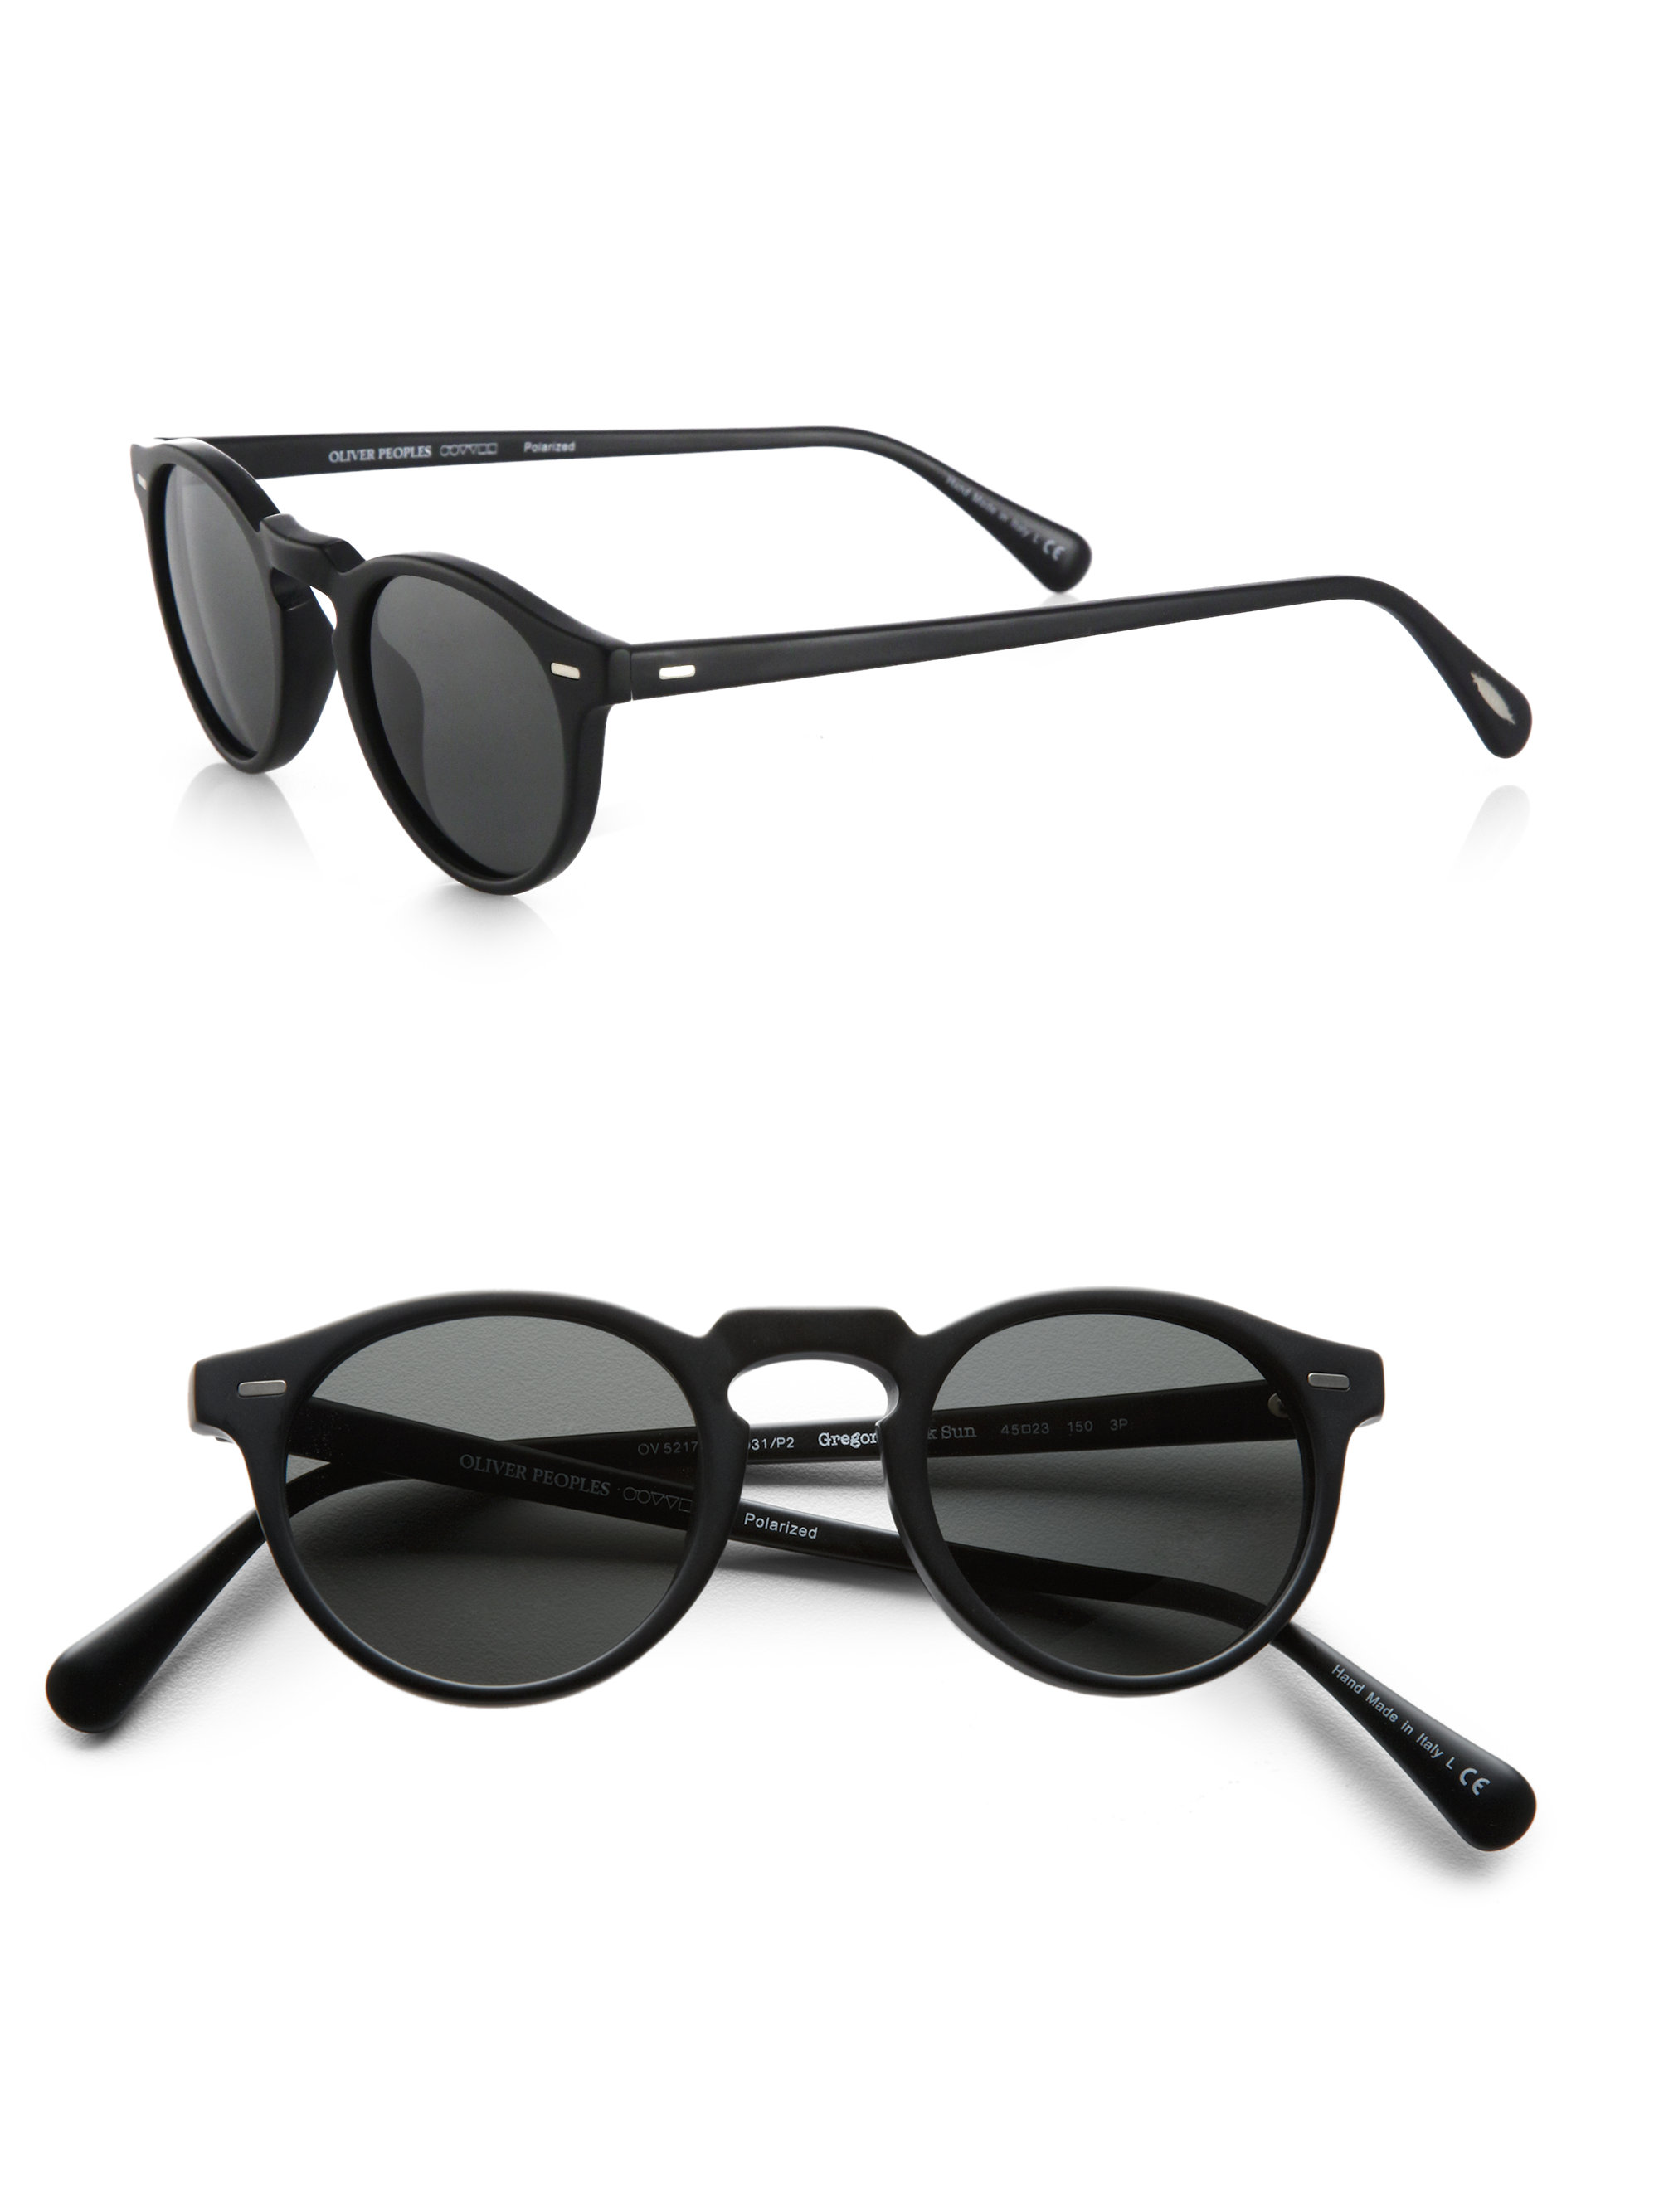 e9dbf28255c Lyst - Oliver Peoples Gregory Peck Sunglasses in Black for Men